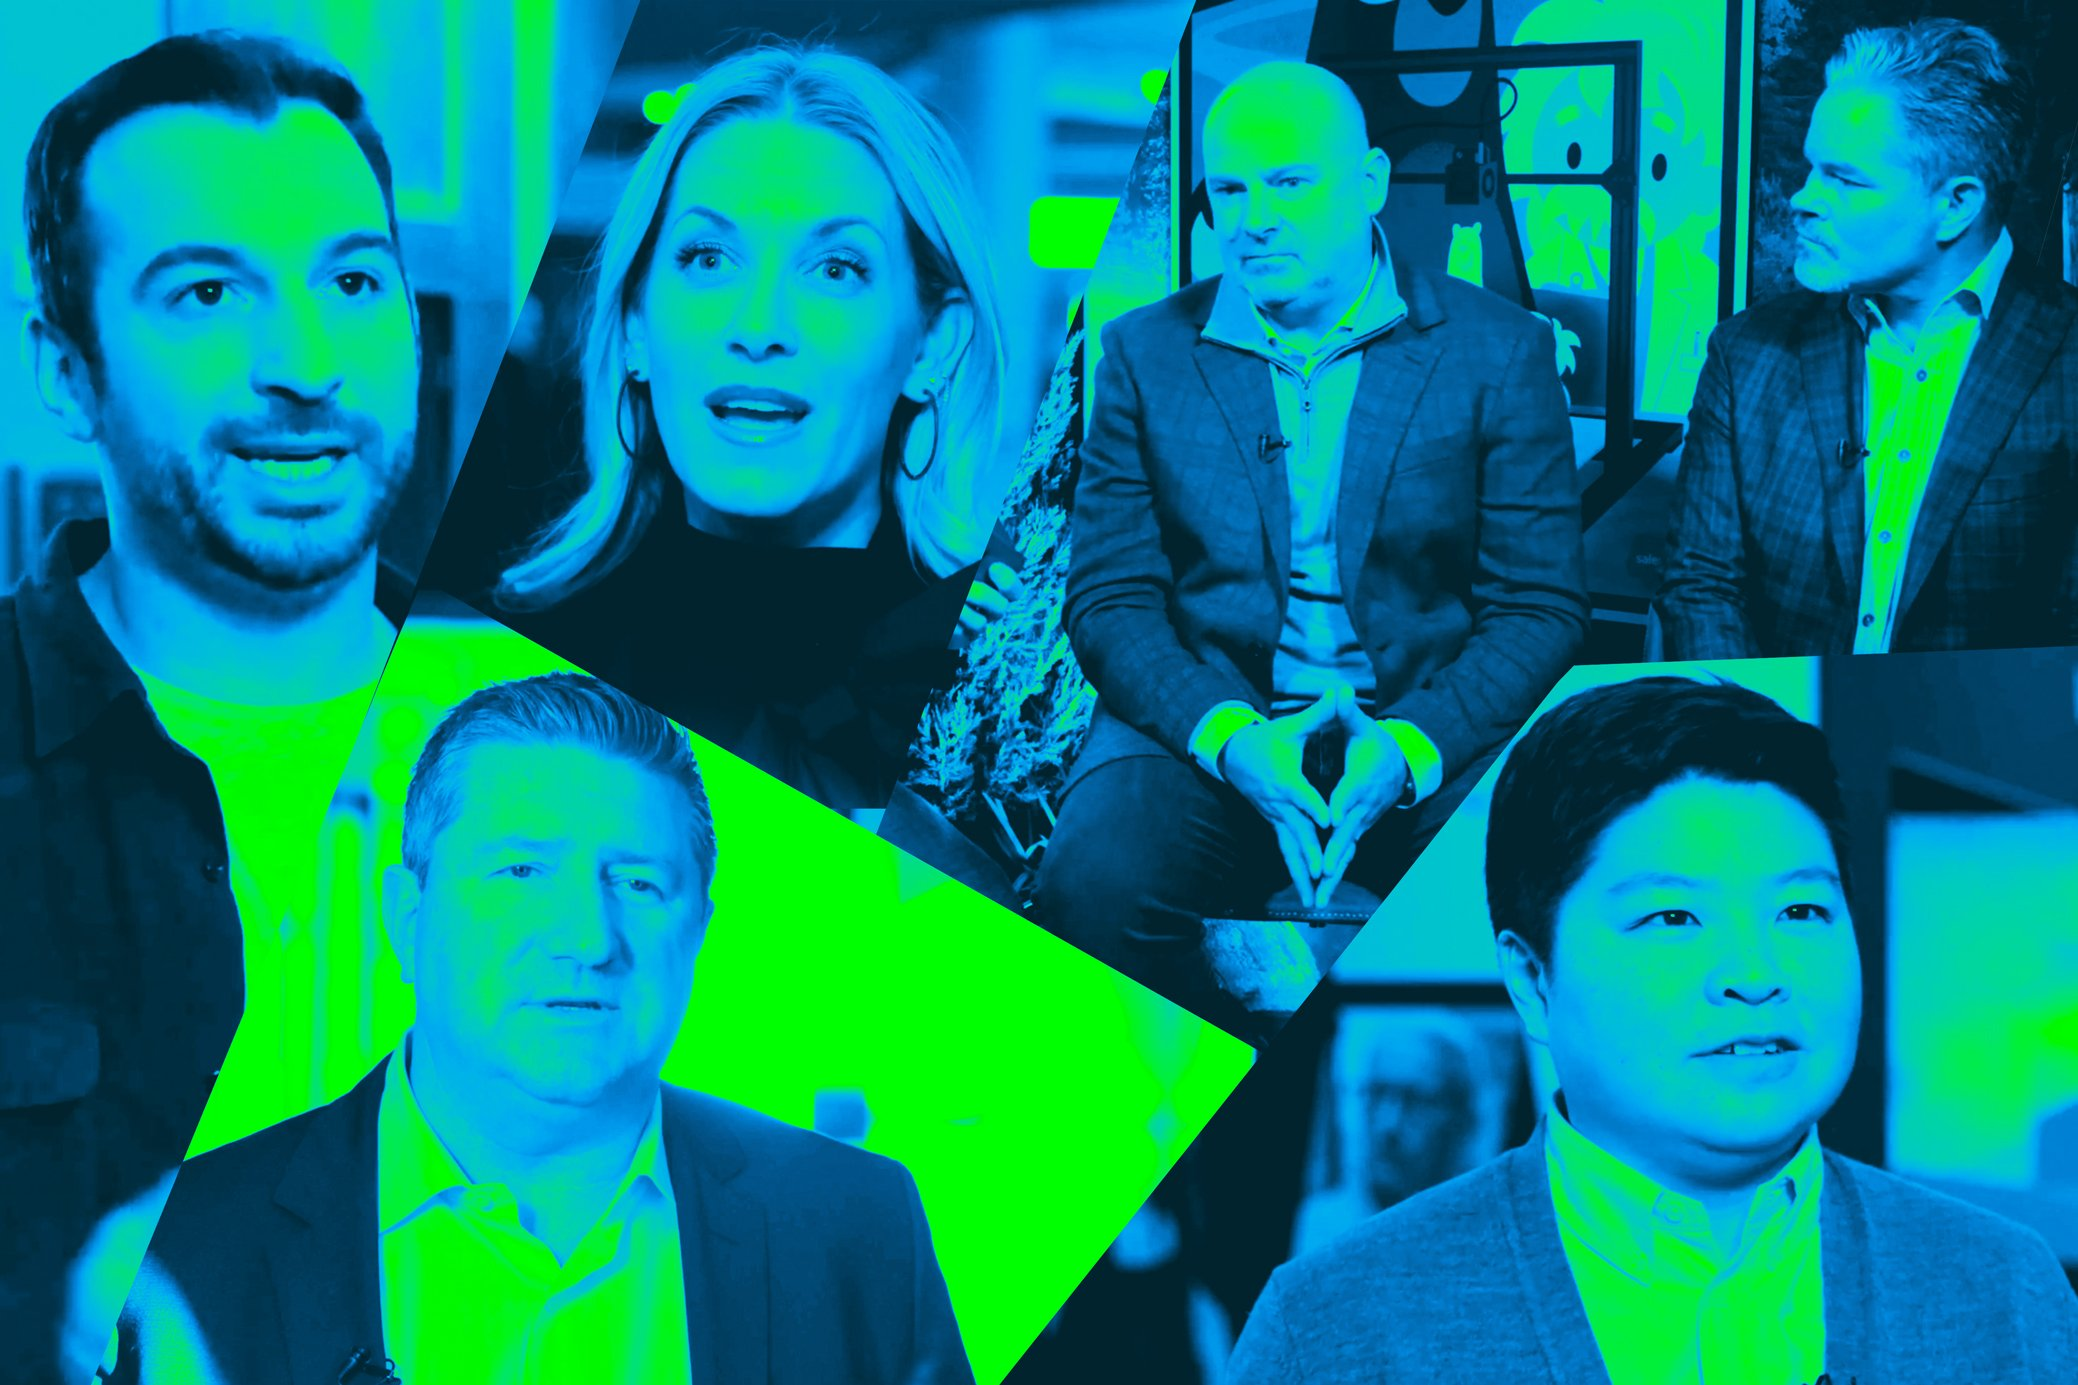 Execs from Pandora, TBWA, Washington Post and Reddit weigh the merits of CES